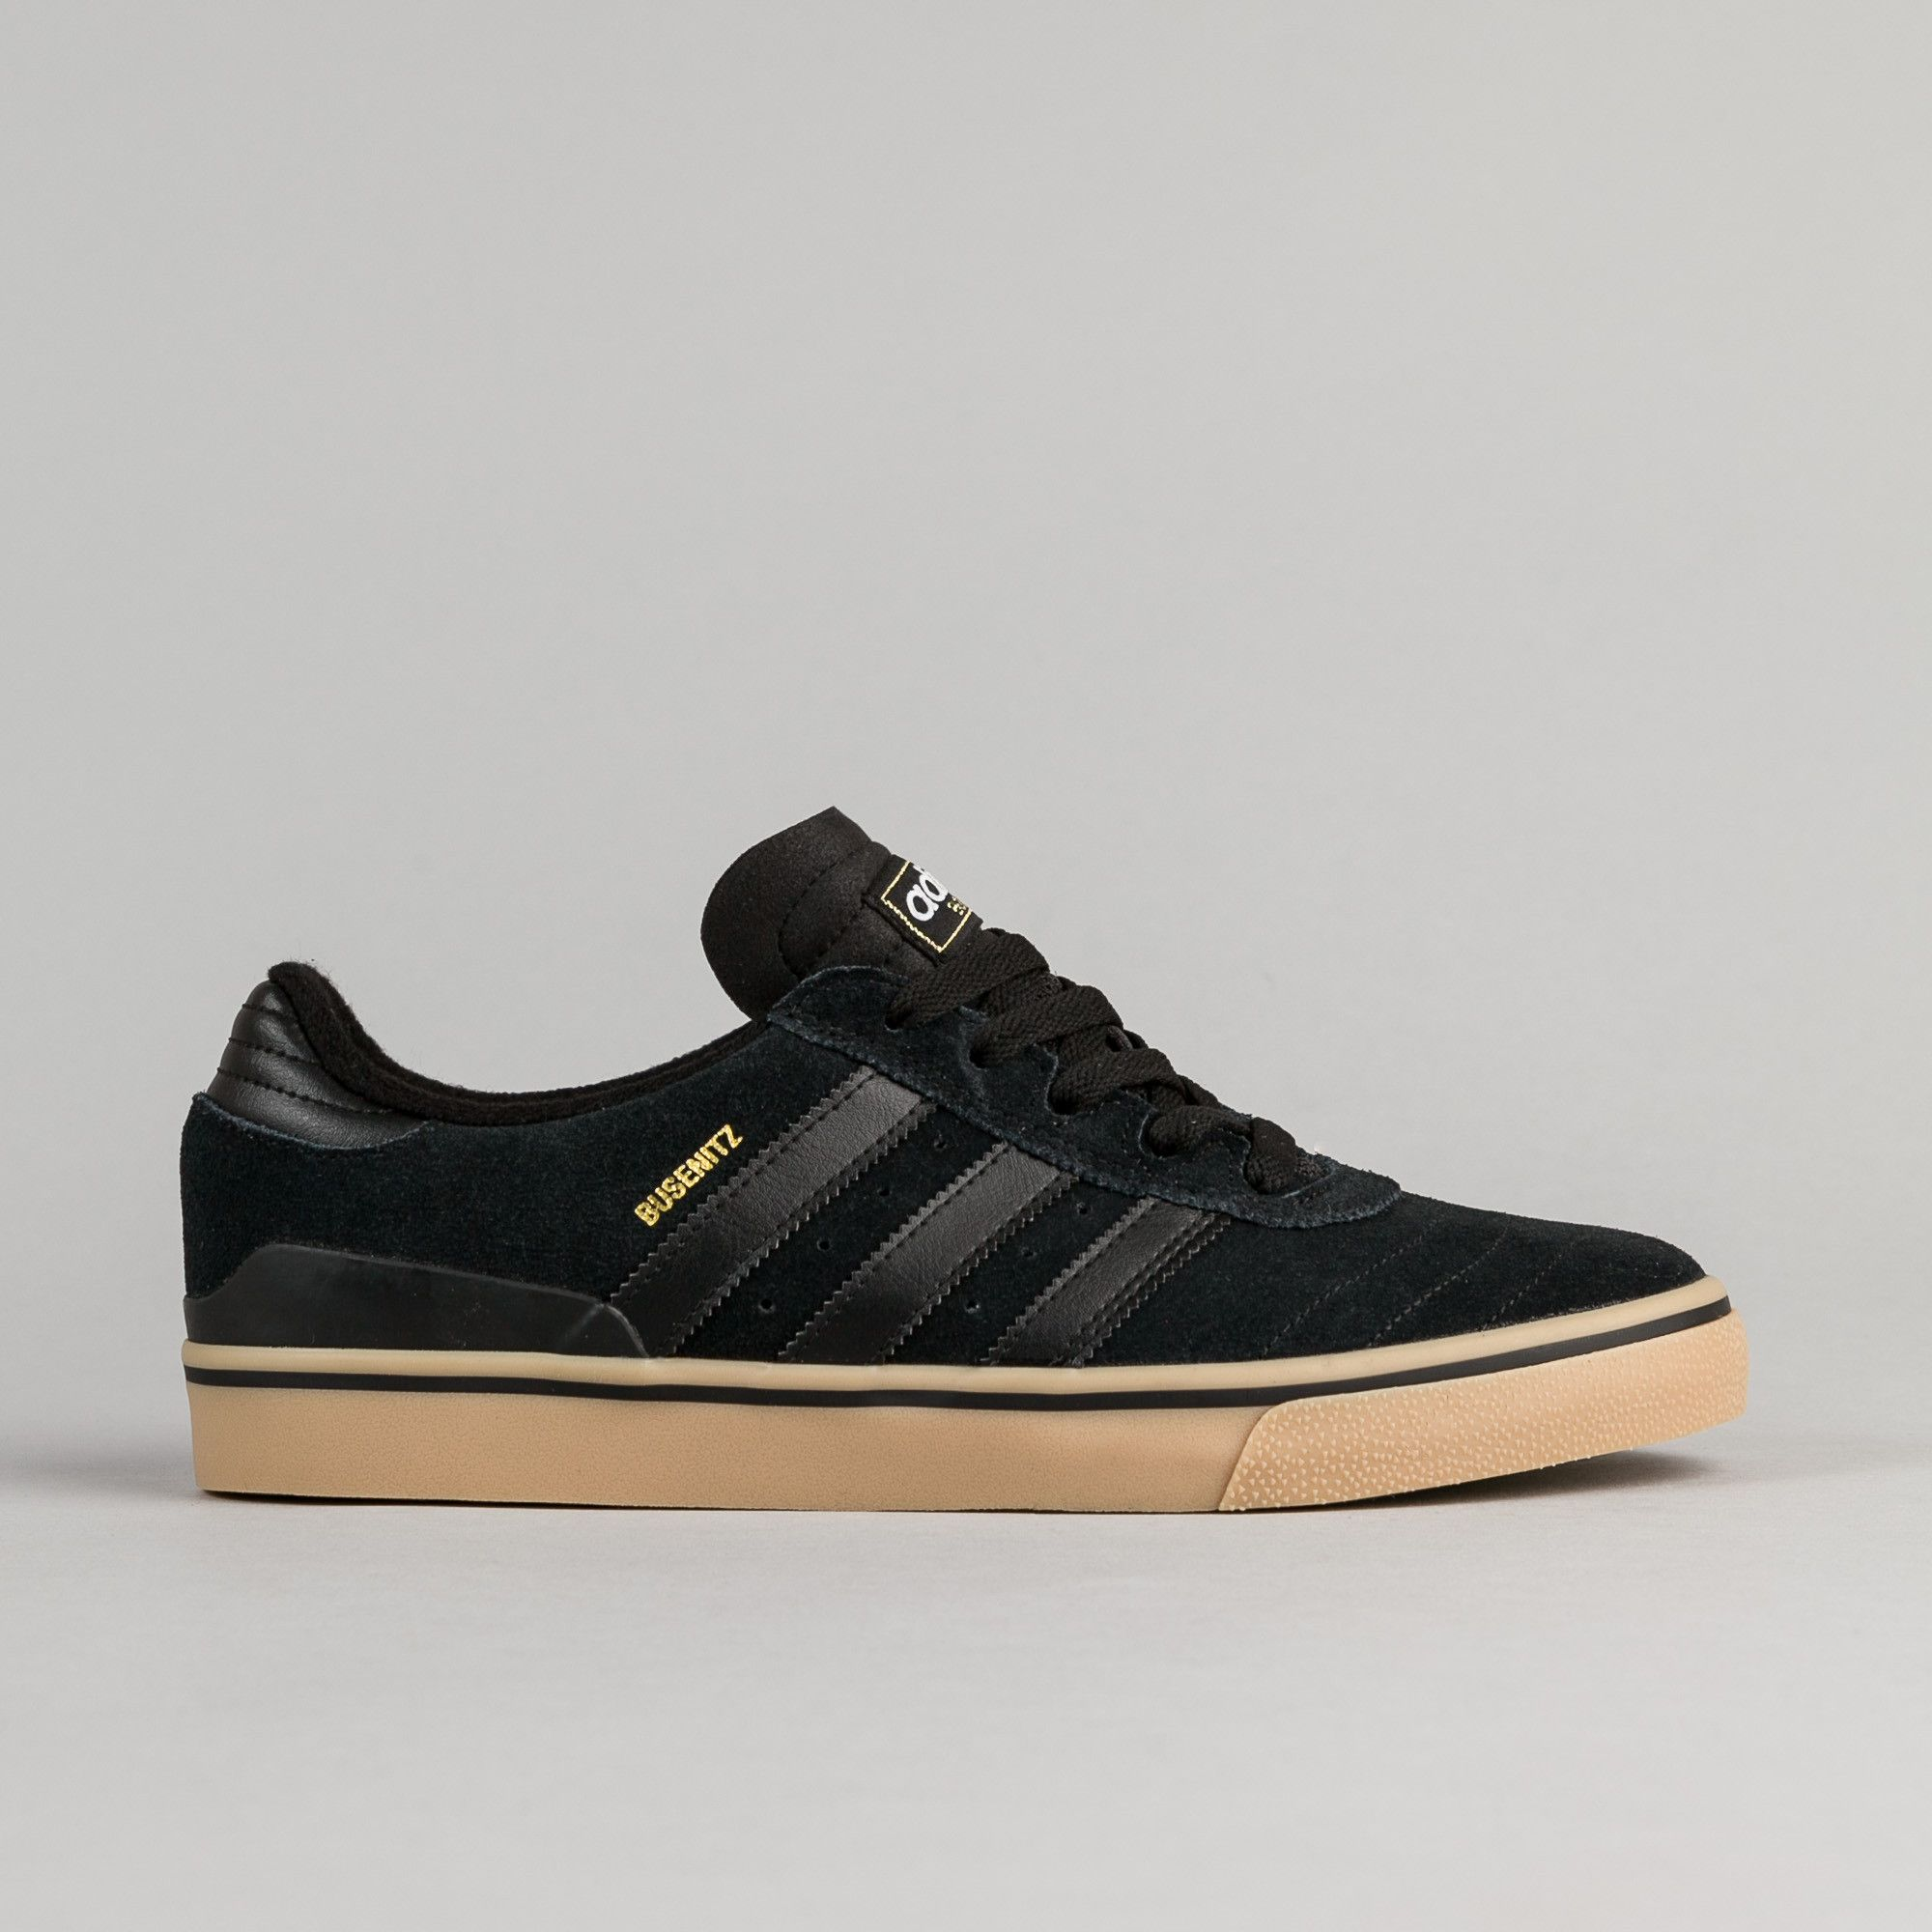 Free Shipping   Free Returns   Shop the Adidas Busenitz Vulc ADV Shoes in  Core Black and Core Black   Gum at Flatspot 668120eba